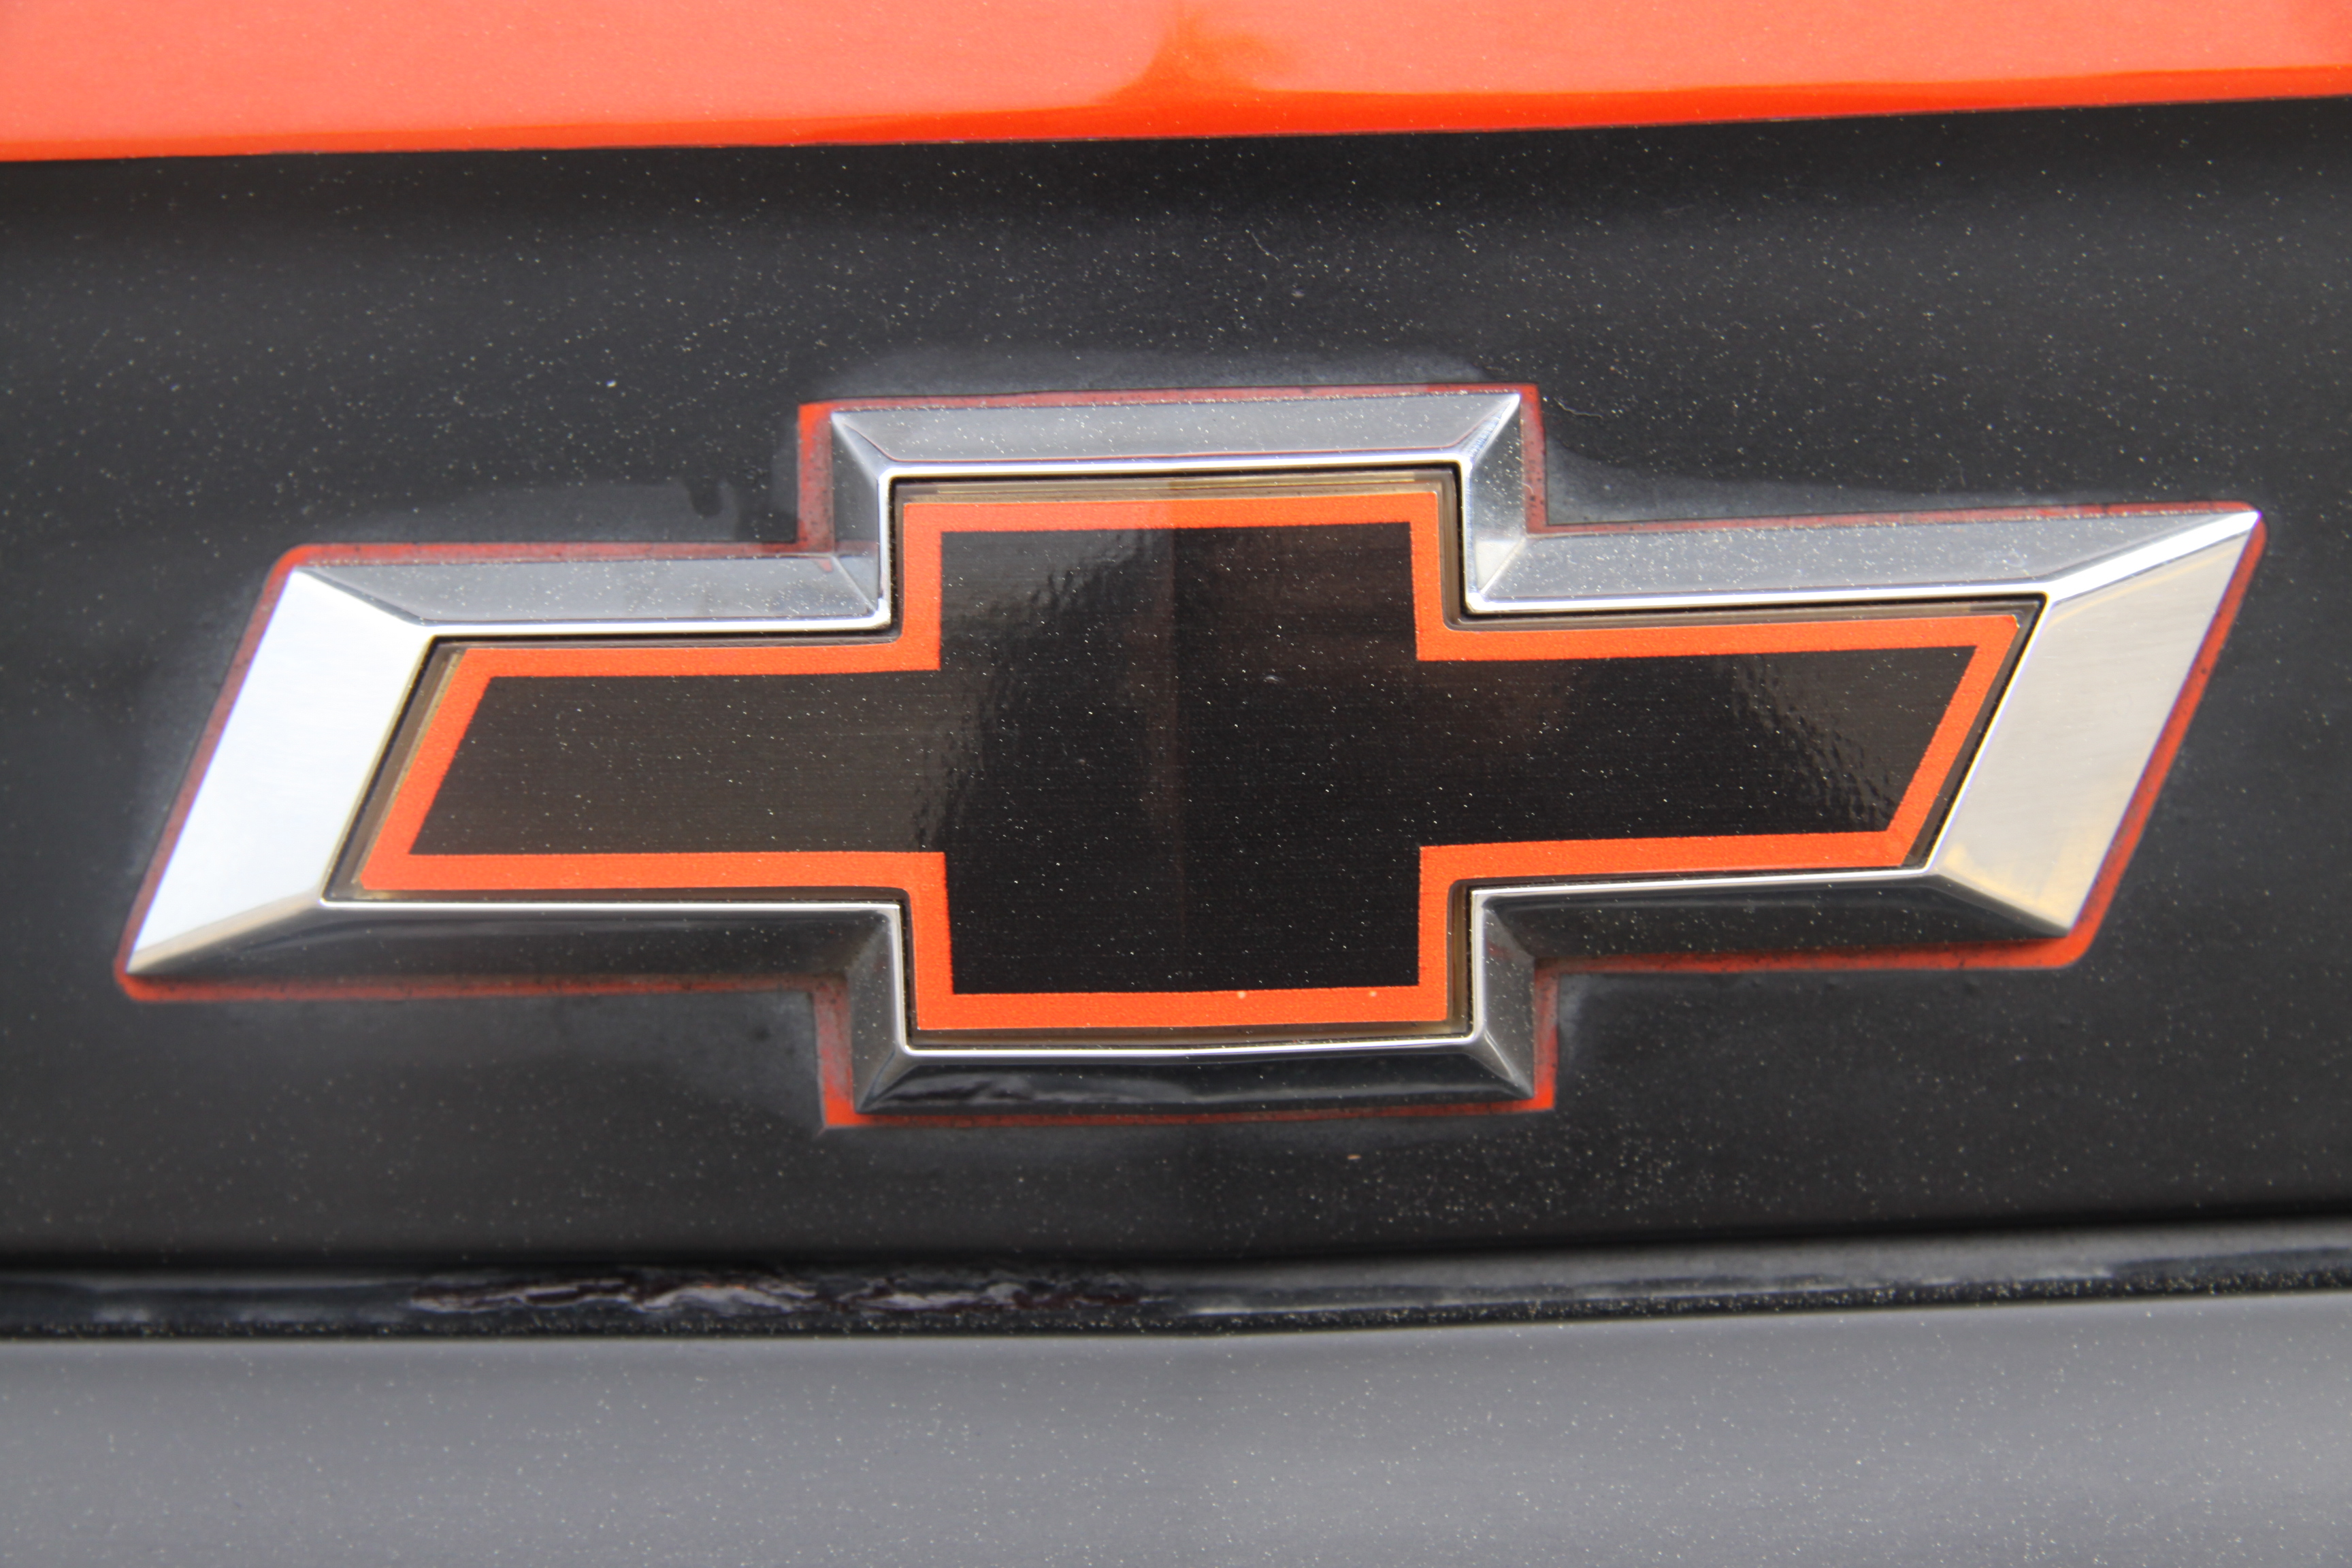 chevy logo wallpaper hd2 - photo #32